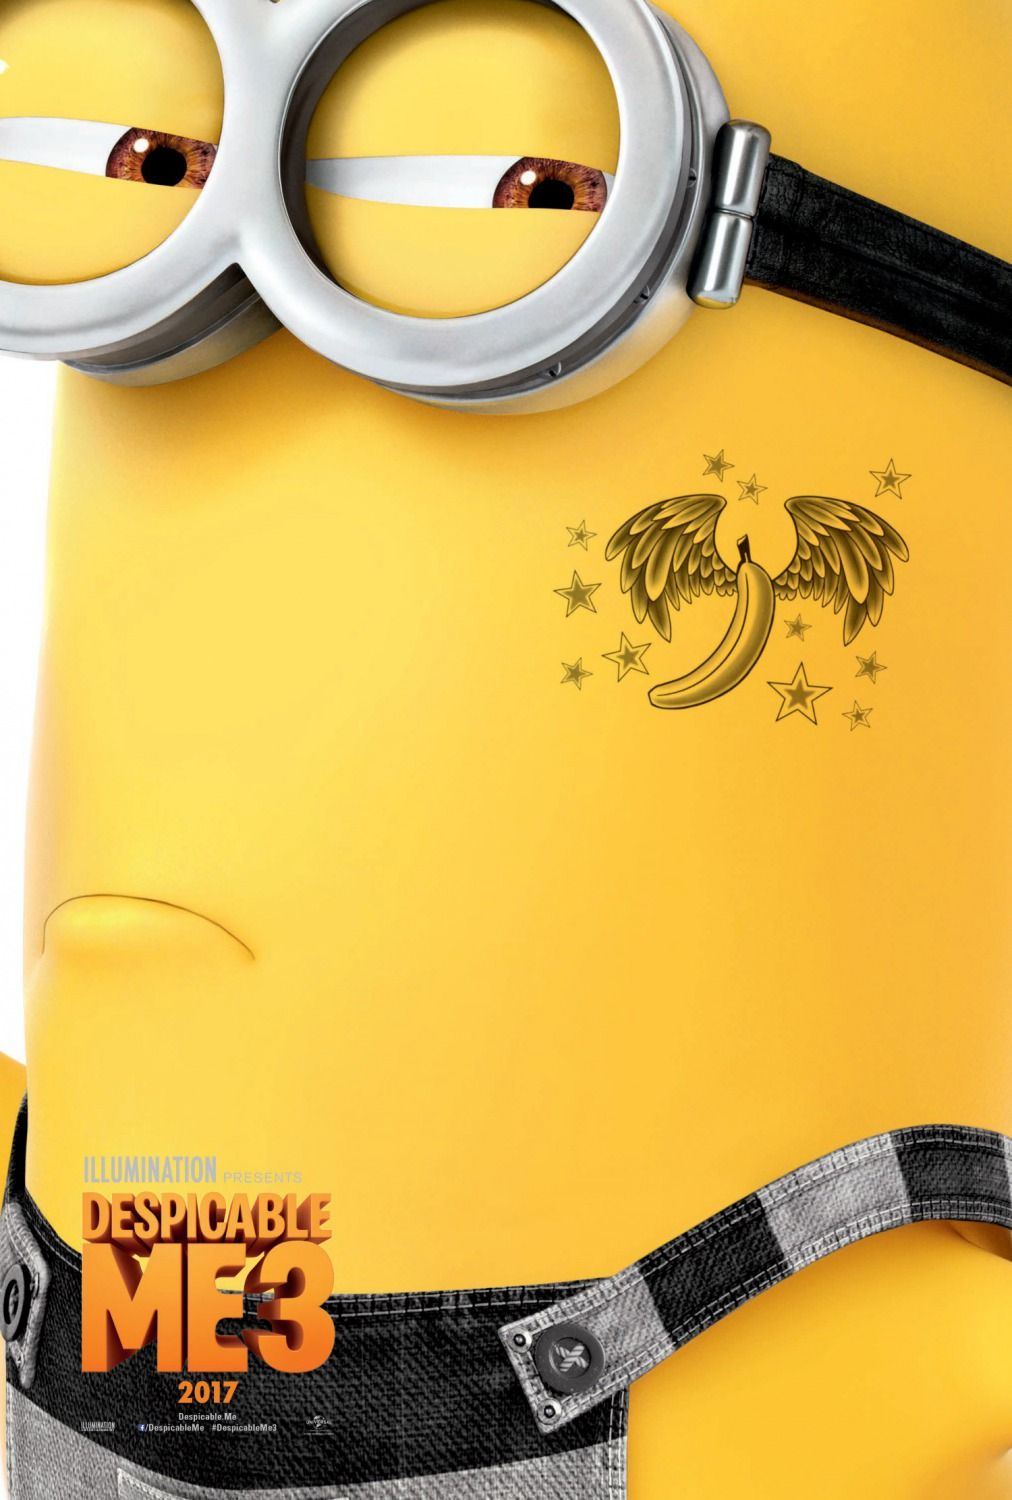 Despicable Me Three Ver12 Xlg Jpg 1012 1500 Wallpaper De Minion Minions Cosas De Minion